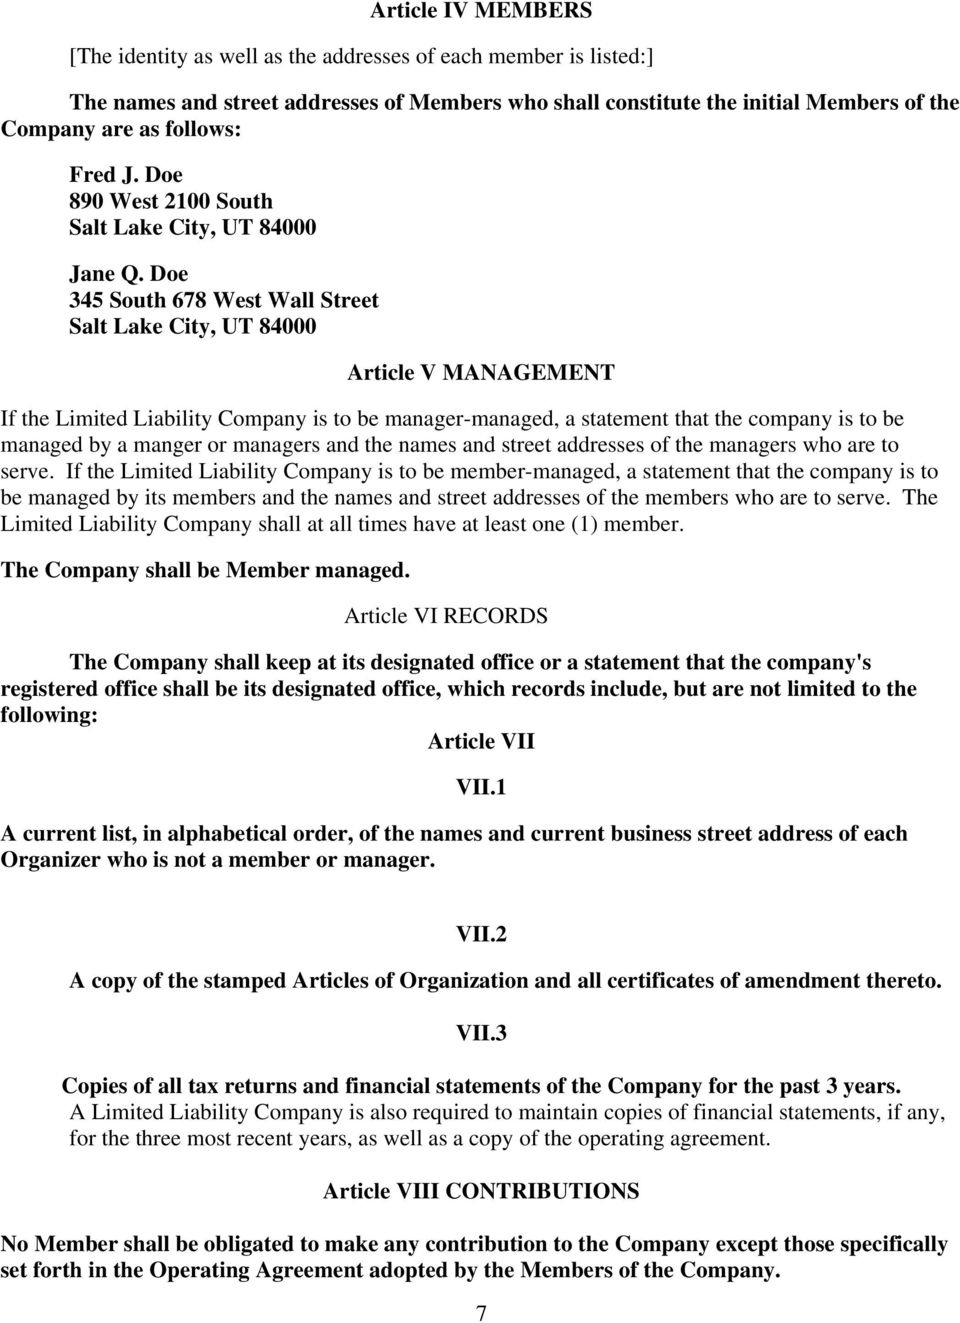 Doe 345 South 678 West Wall Street Salt Lake City, UT 84000 Article V MANAGEMENT If the Limited Liability Company is to be manager-managed, a statement that the company is to be managed by a manger